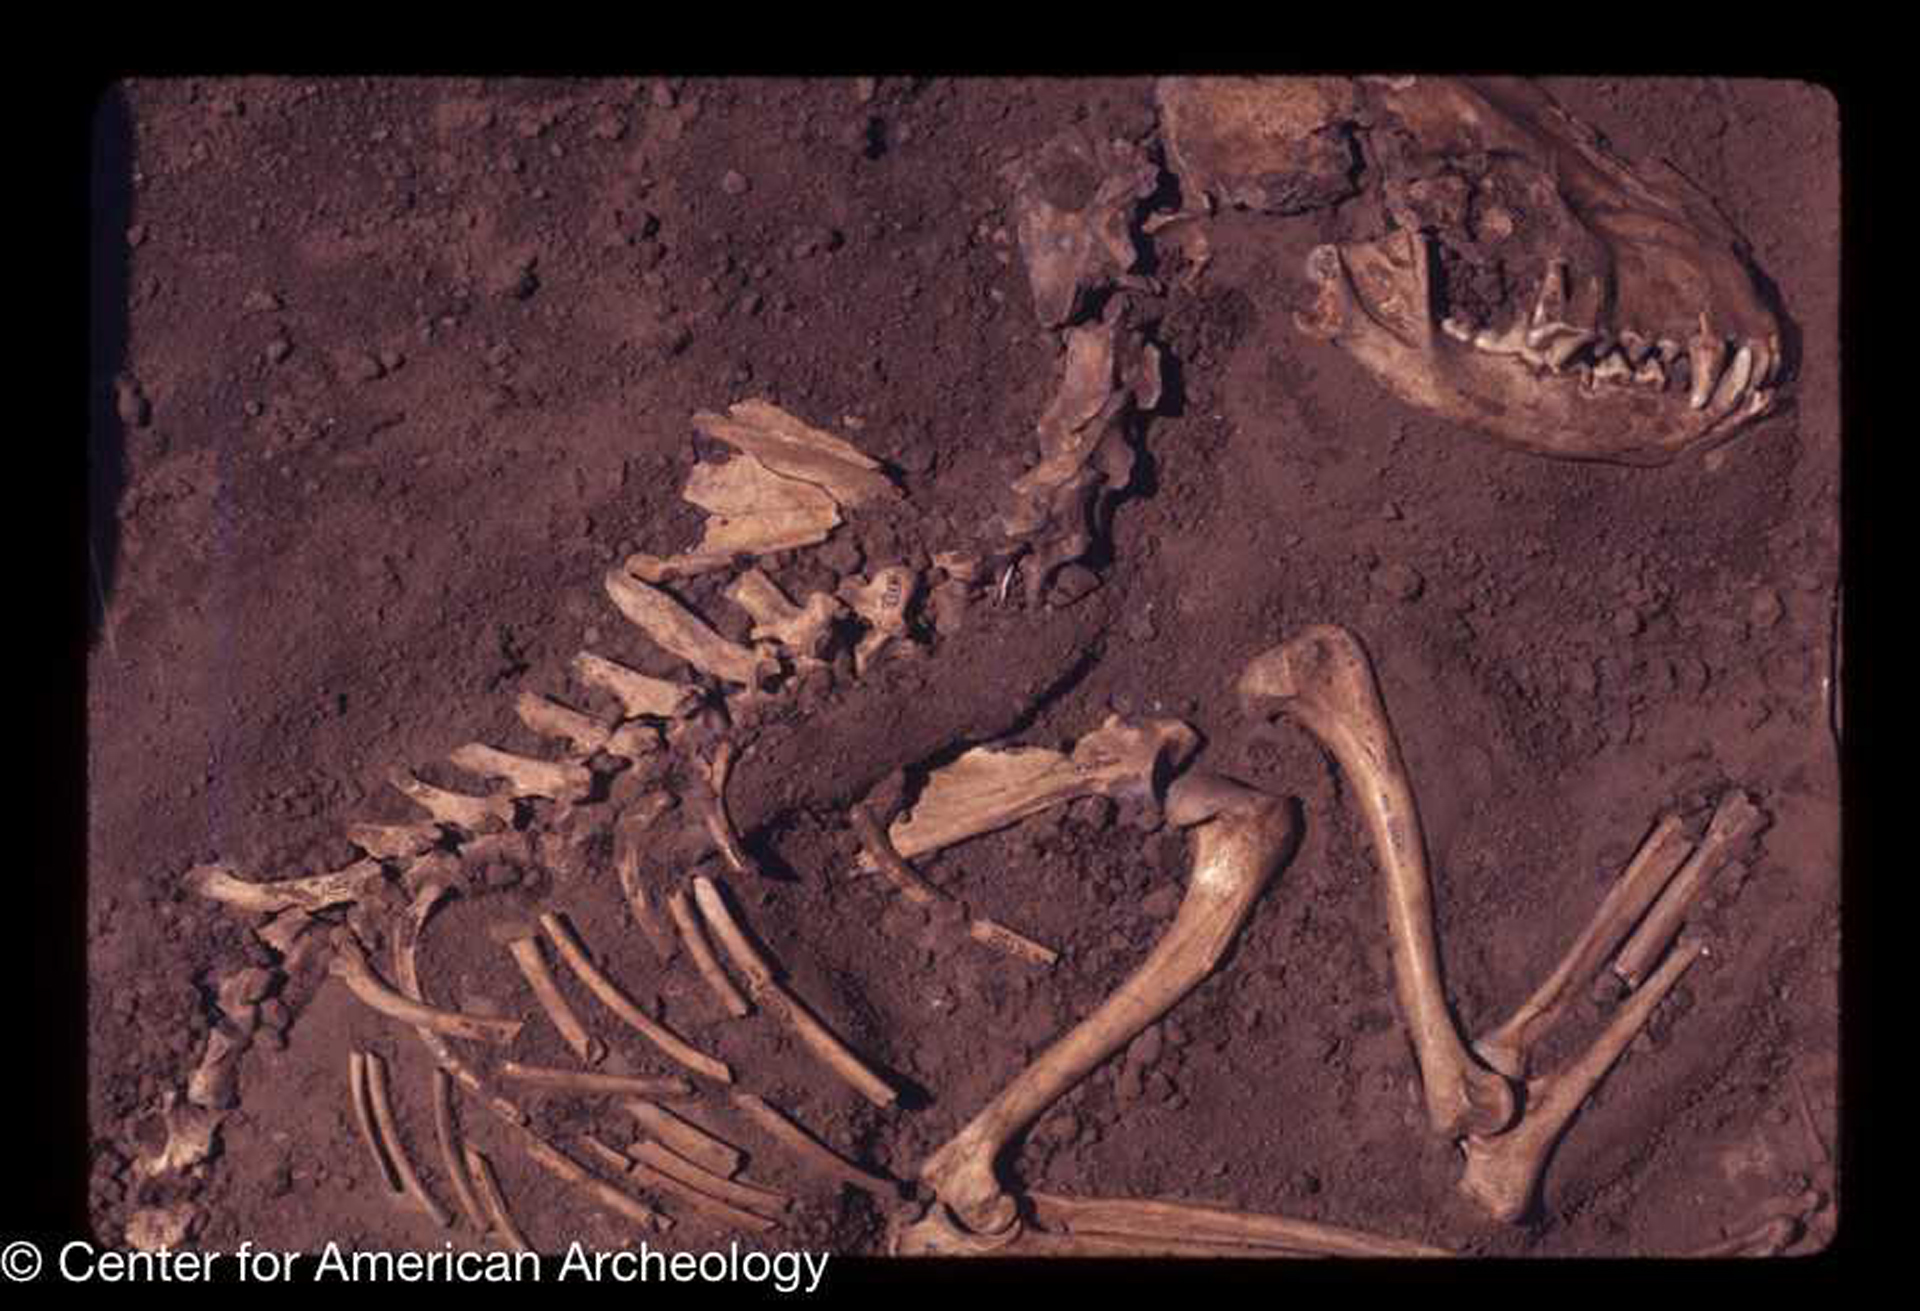 Dogs were domesticated in North America 10,000 years ago, study says